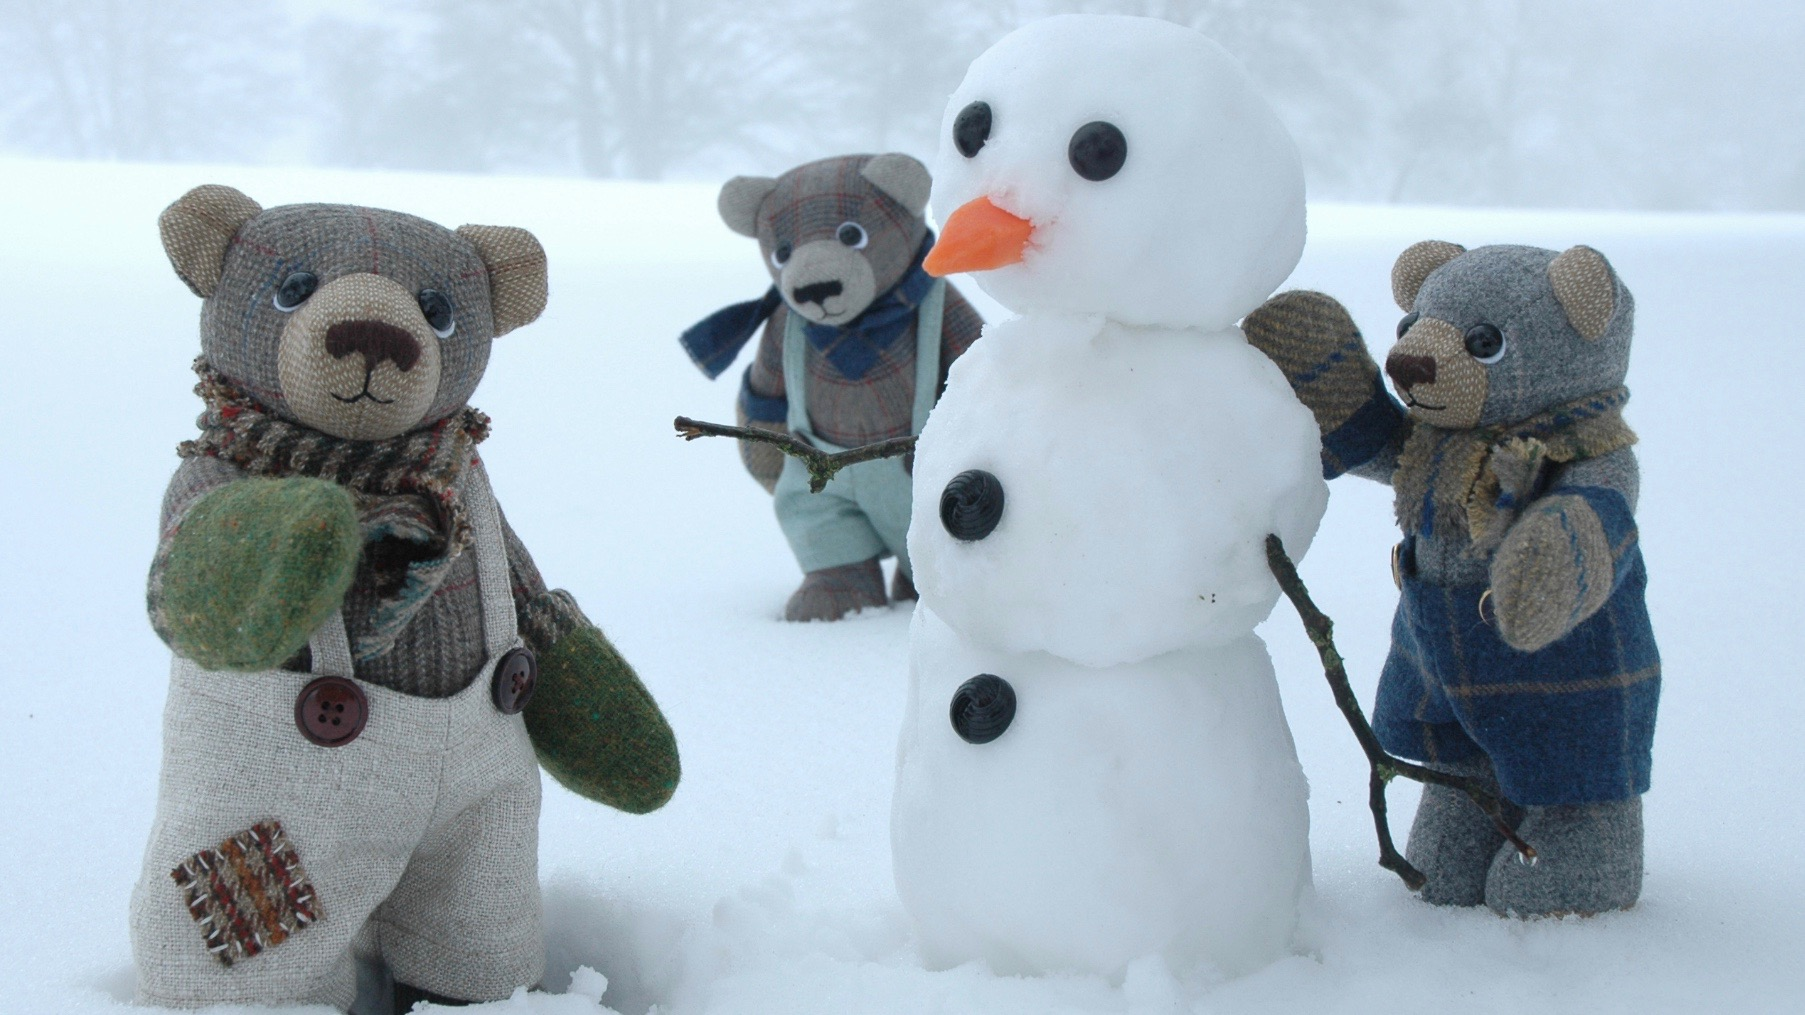 Collectible artist teddy bears by Laura Mirjami